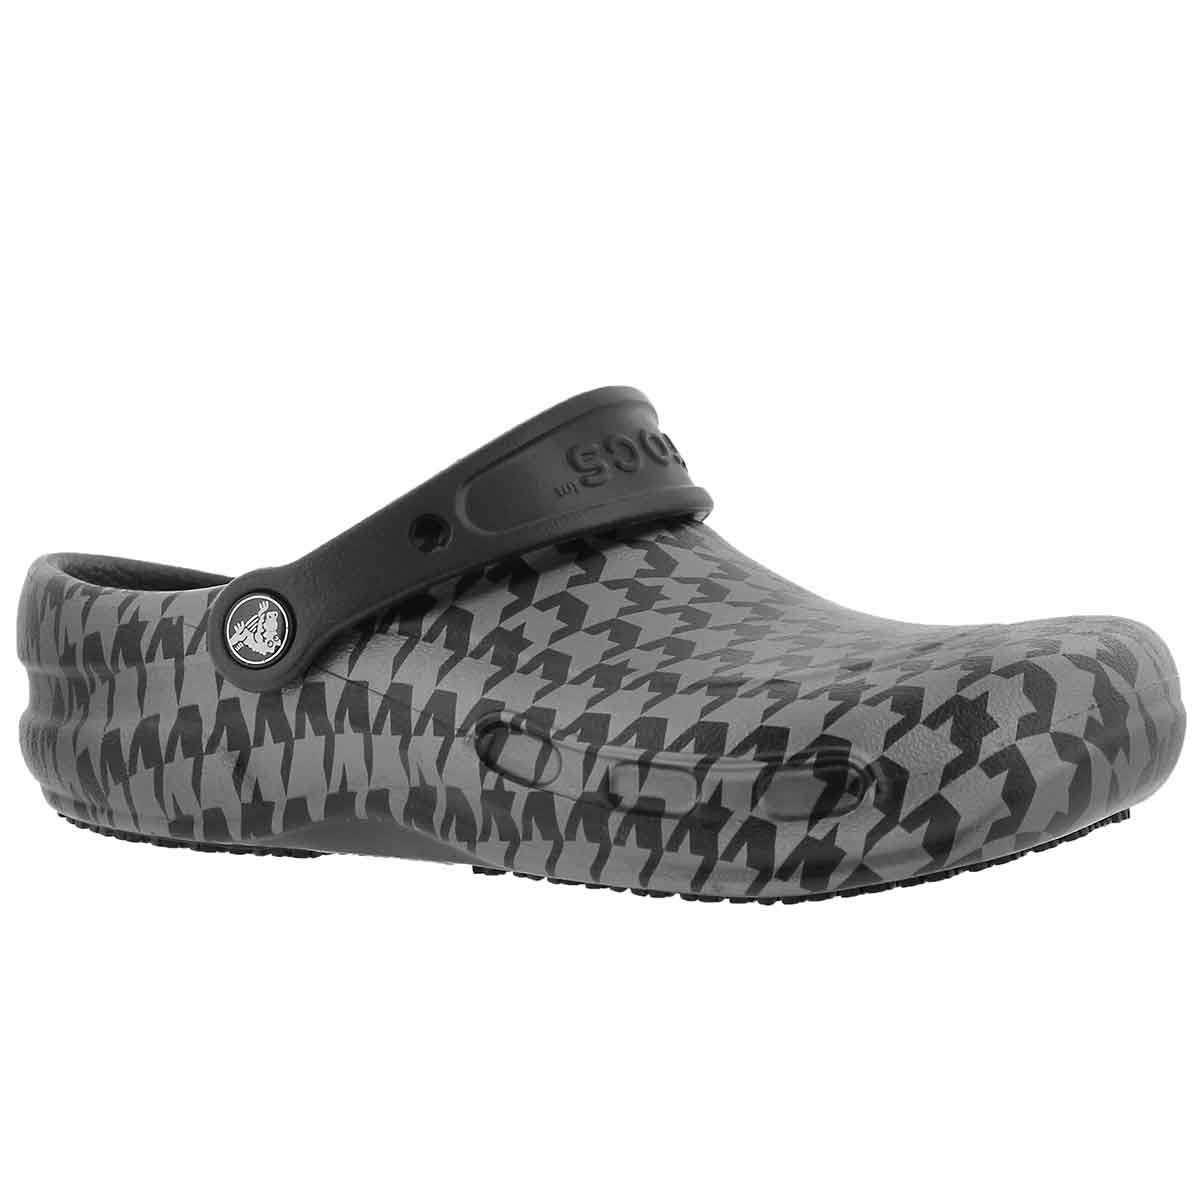 Unisex BISTRO GRAPHIC black/silver clogs